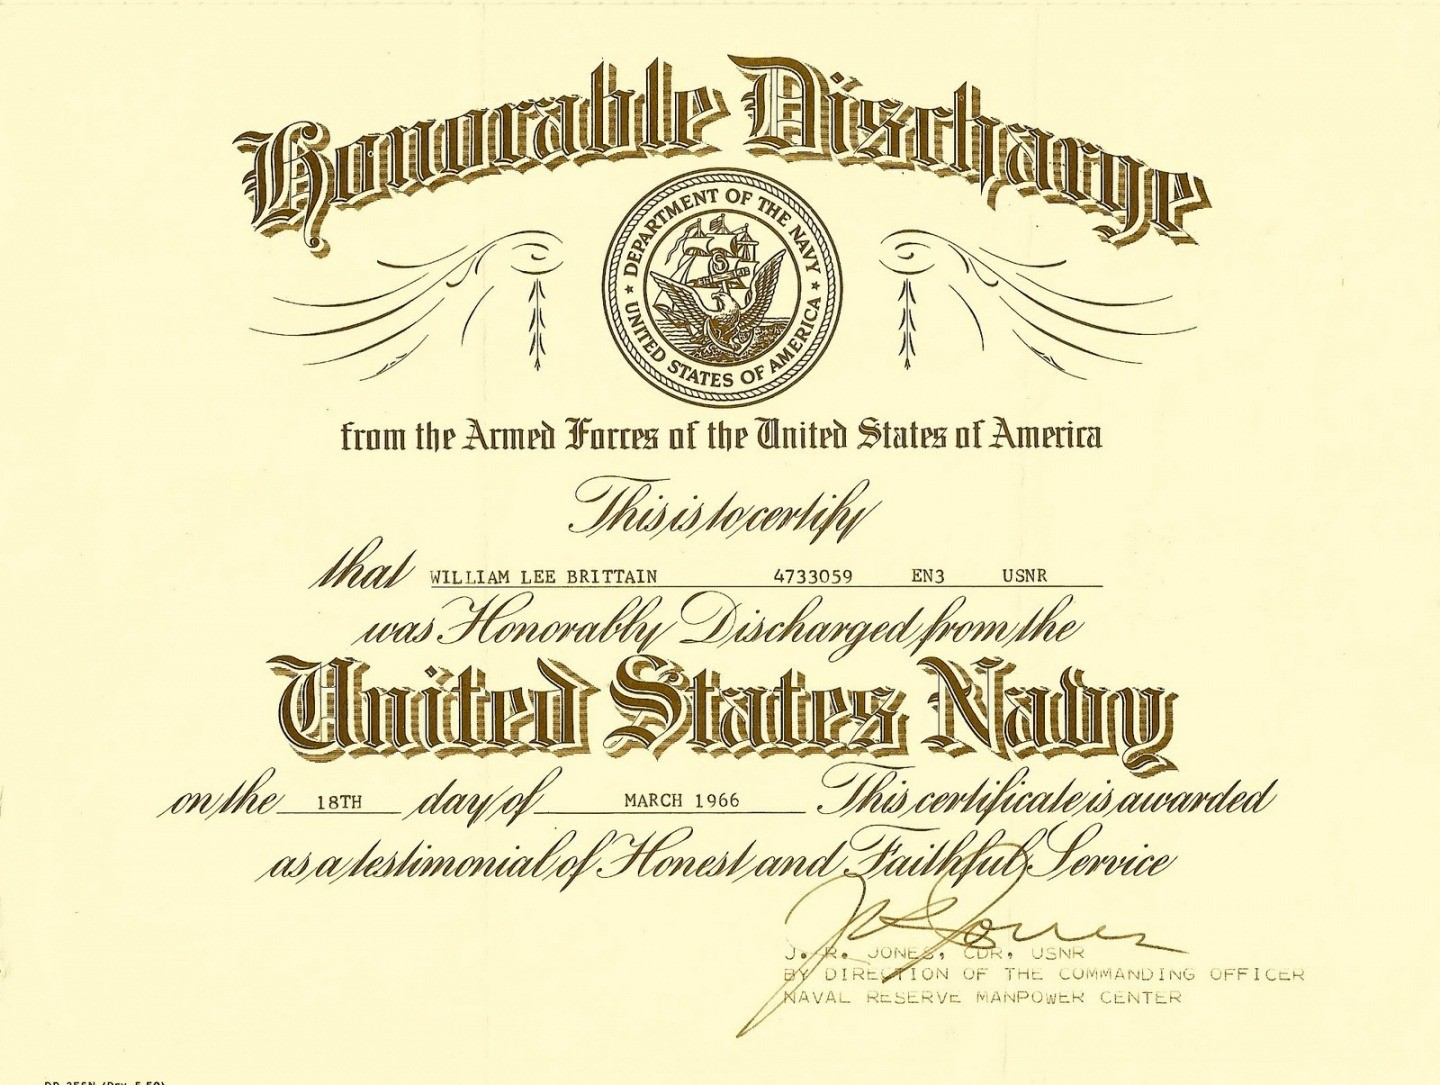 Officer Promotion Certificate Template - Atlantaauctionco Within Officer Promotion Certificate Template